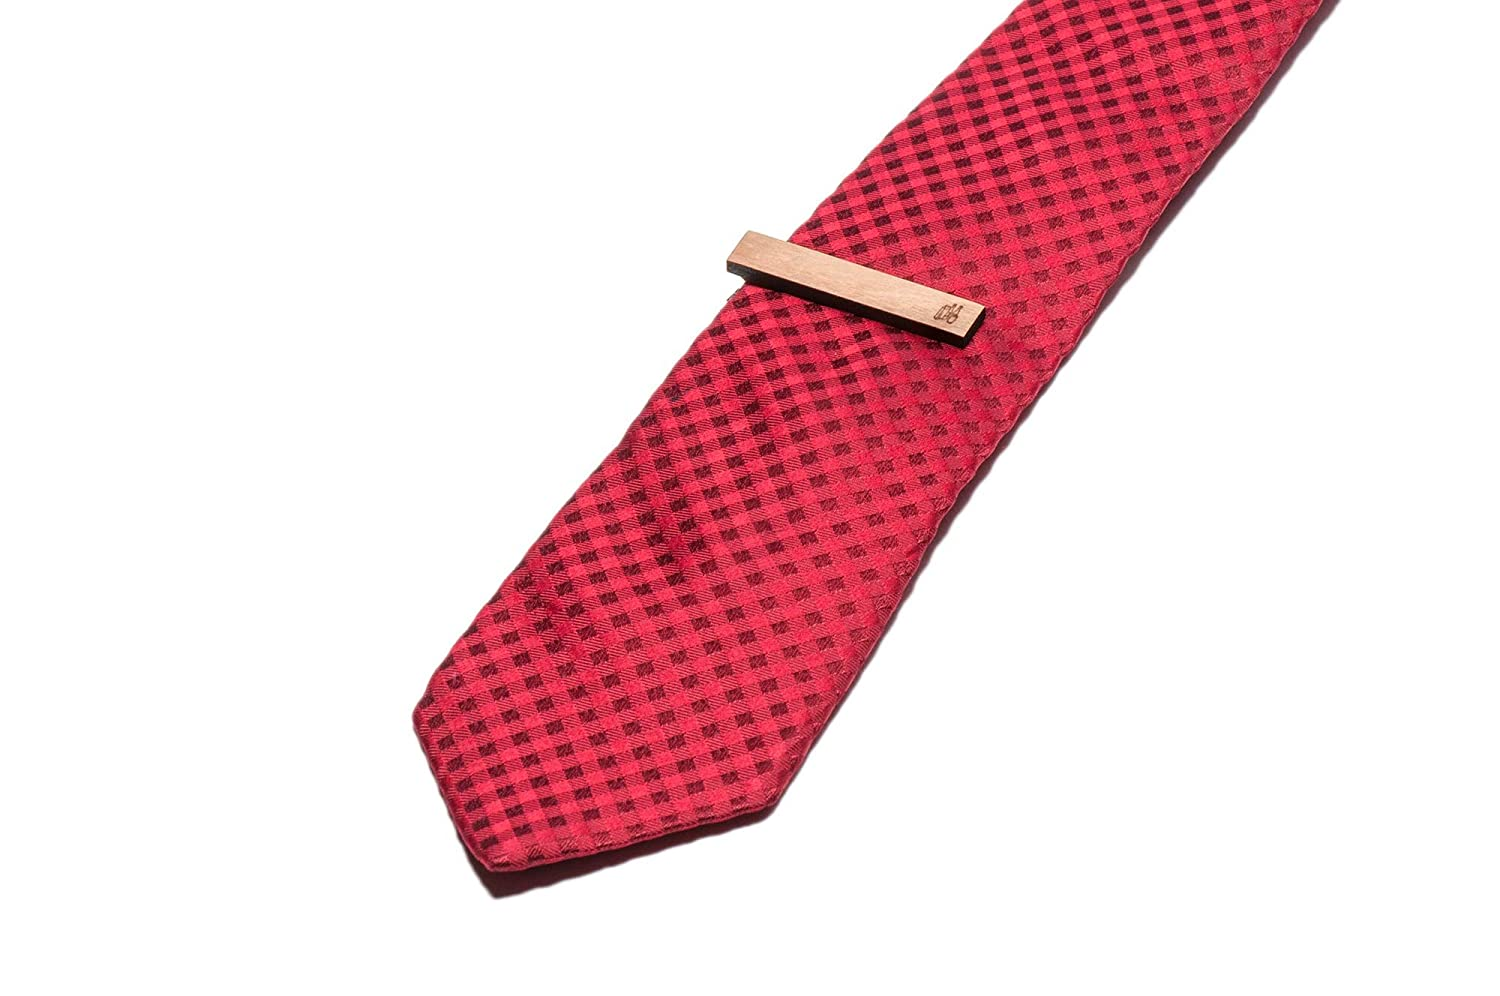 Wooden Accessories Company Wooden Tie Clips with Laser Engraved Milk and Beer Design Cherry Wood Tie Bar Engraved in The USA